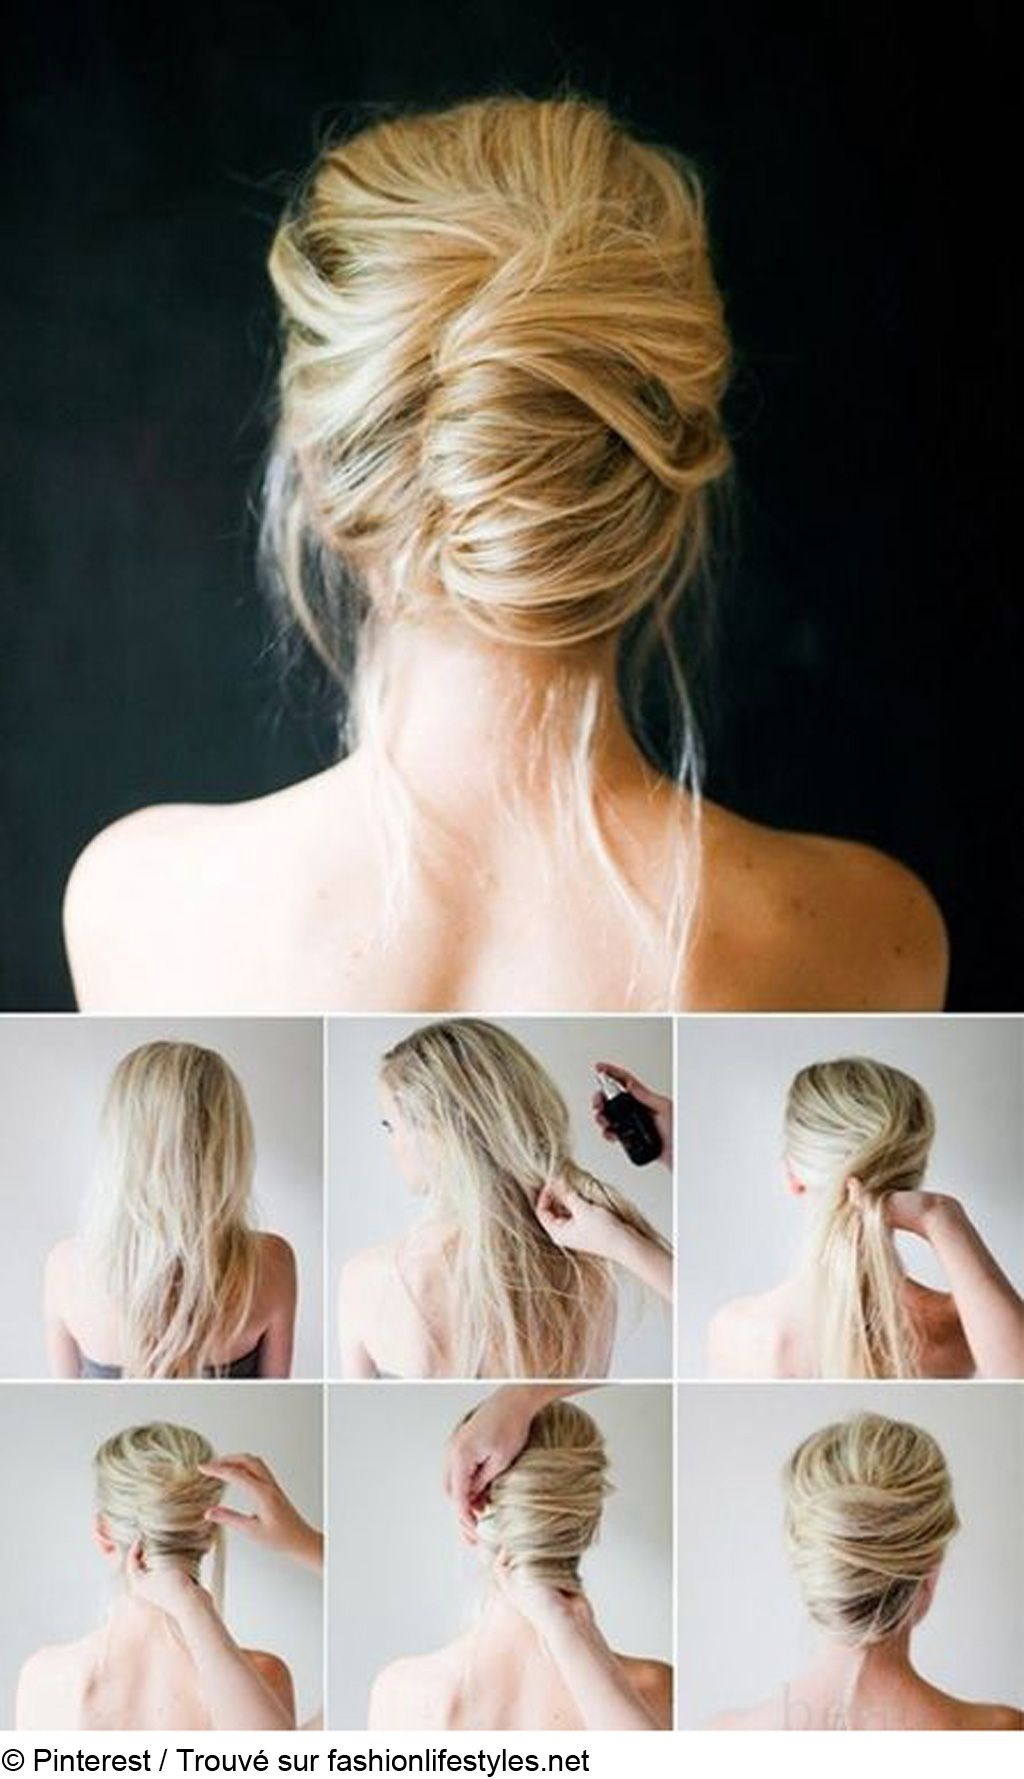 Faire un chignon flou cheveux long